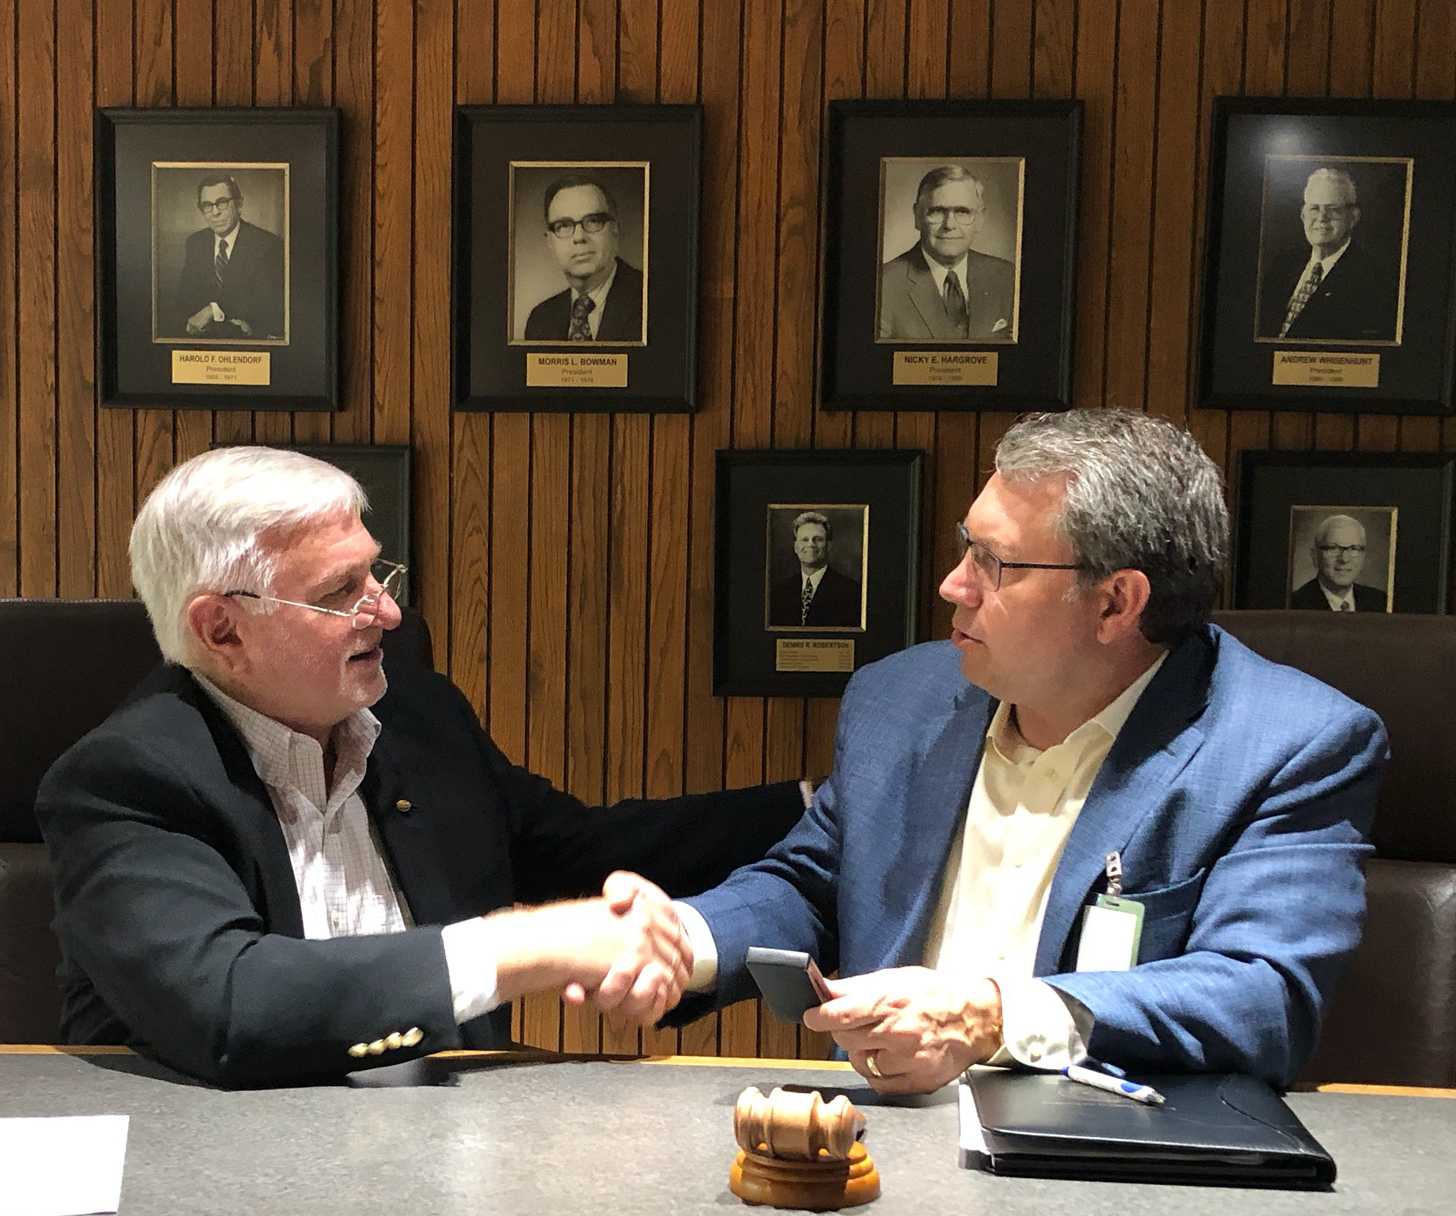 Two men wearing sport coats sit at table with gavel shaking hands, portrait photo gallery in background